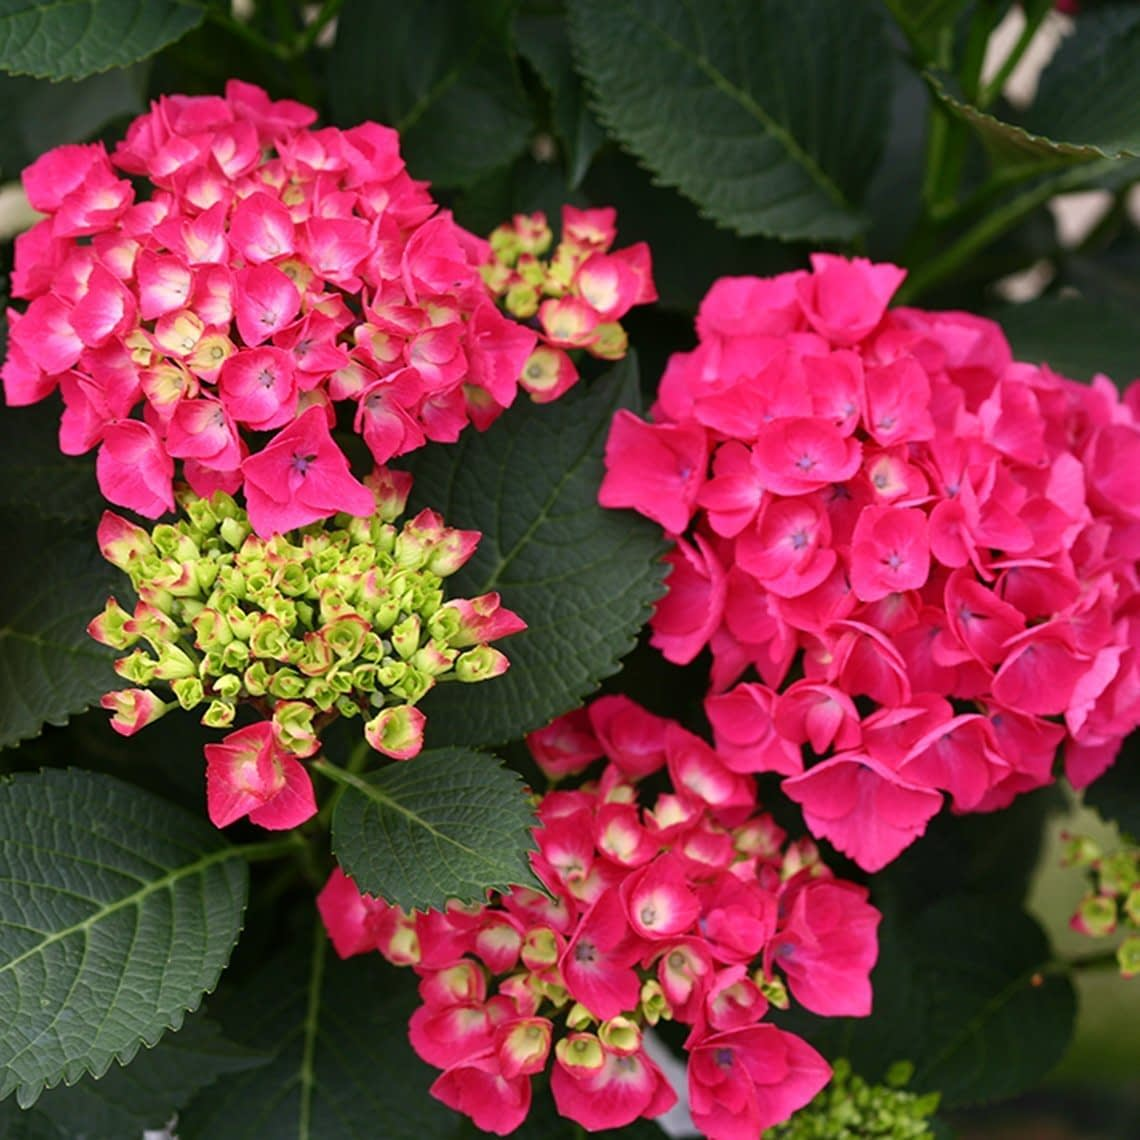 The red mophead flowers of Cityline Paris hydrangea contrast with the dark green foliage.